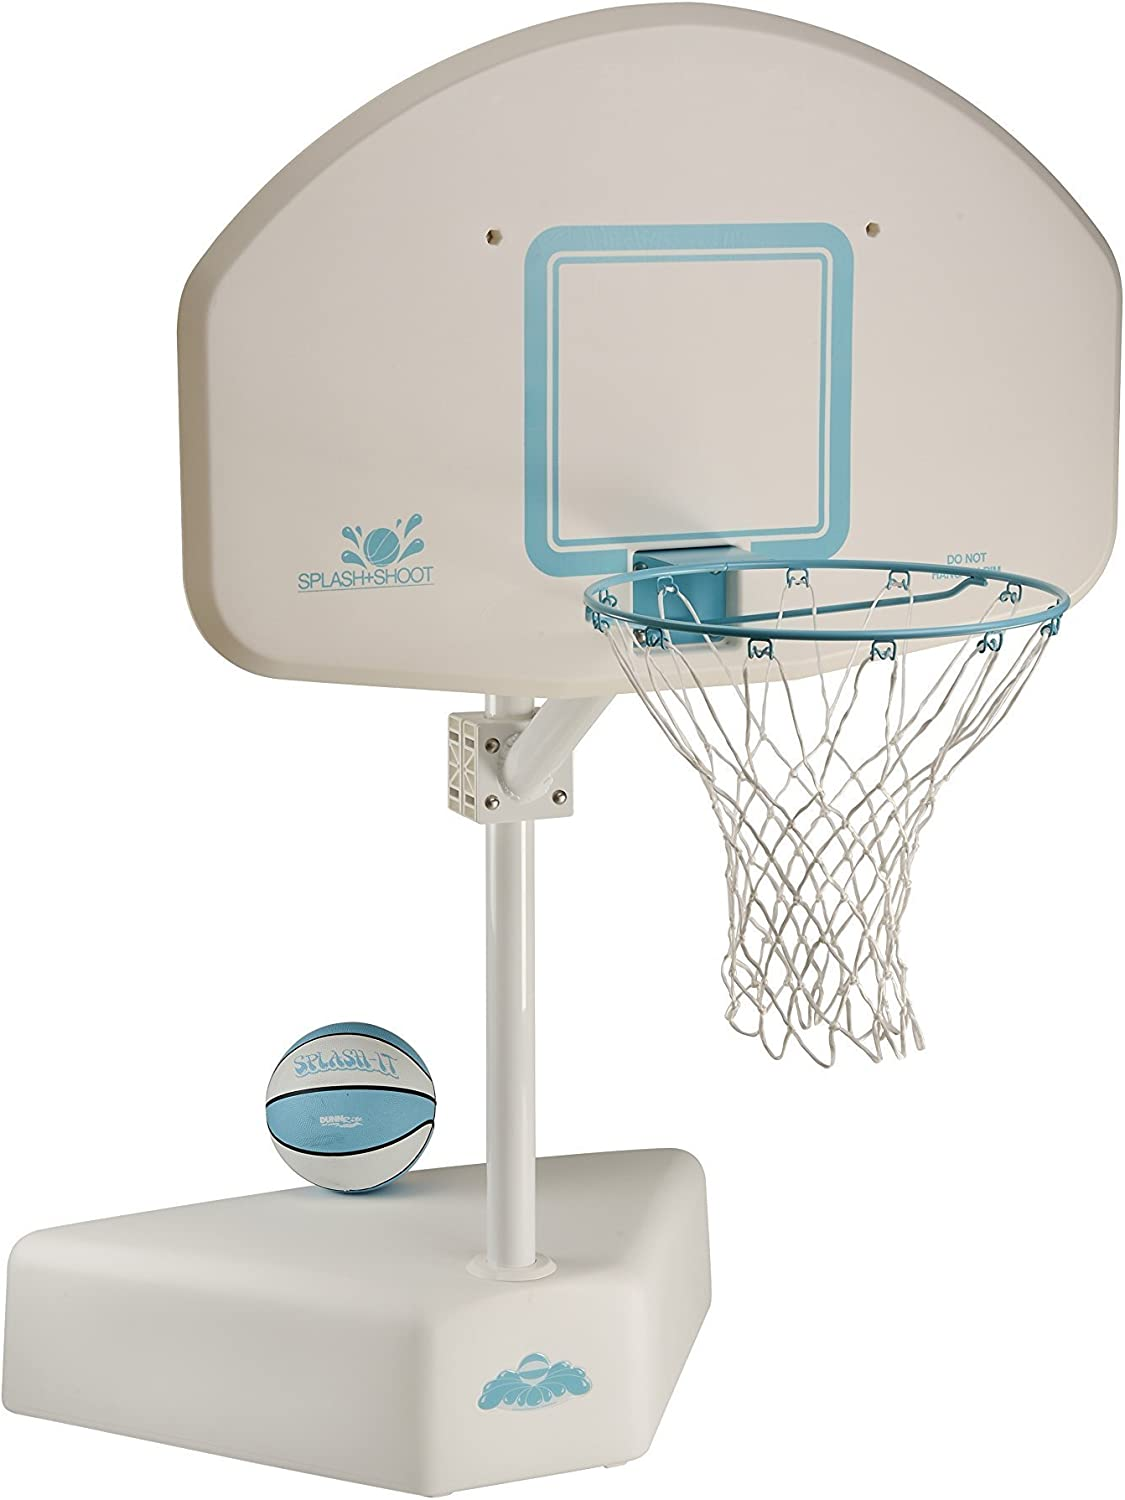 Dunnrite Splash & Shoot Basketball Hoop